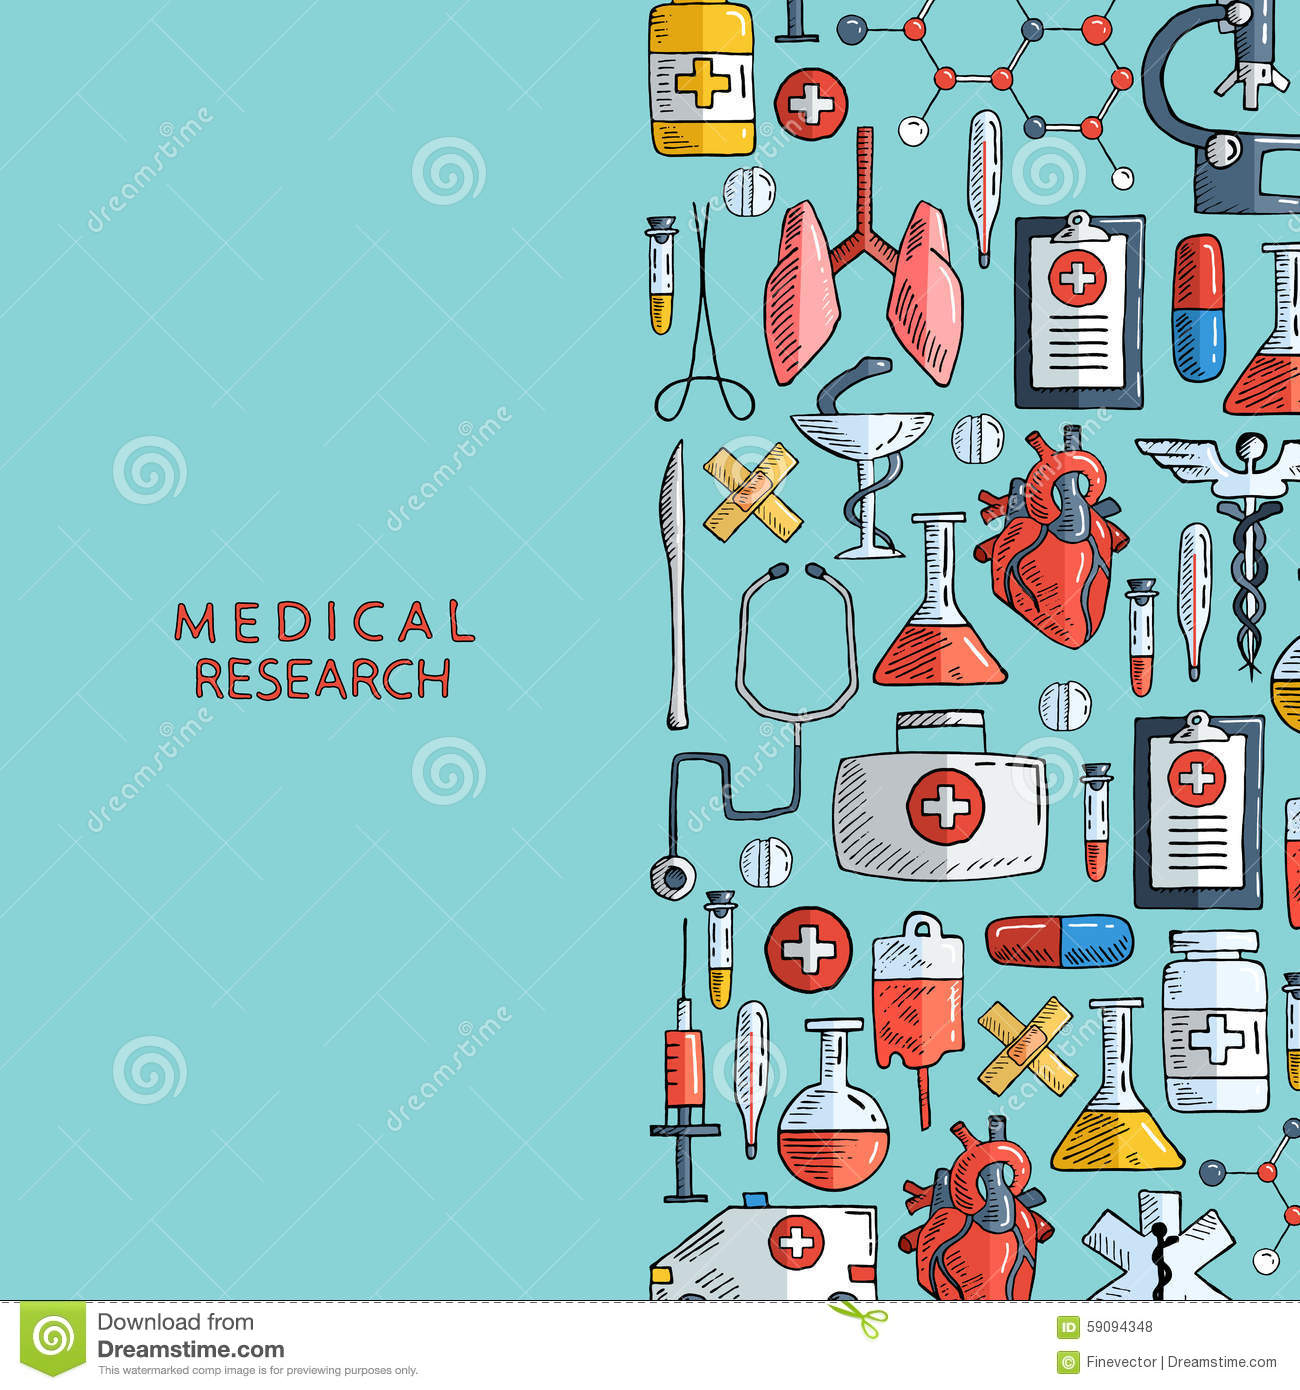 health care marketing research paper The importance of market research in the healthcare industry the importance of market research paper define market research as stated by the american marketing.